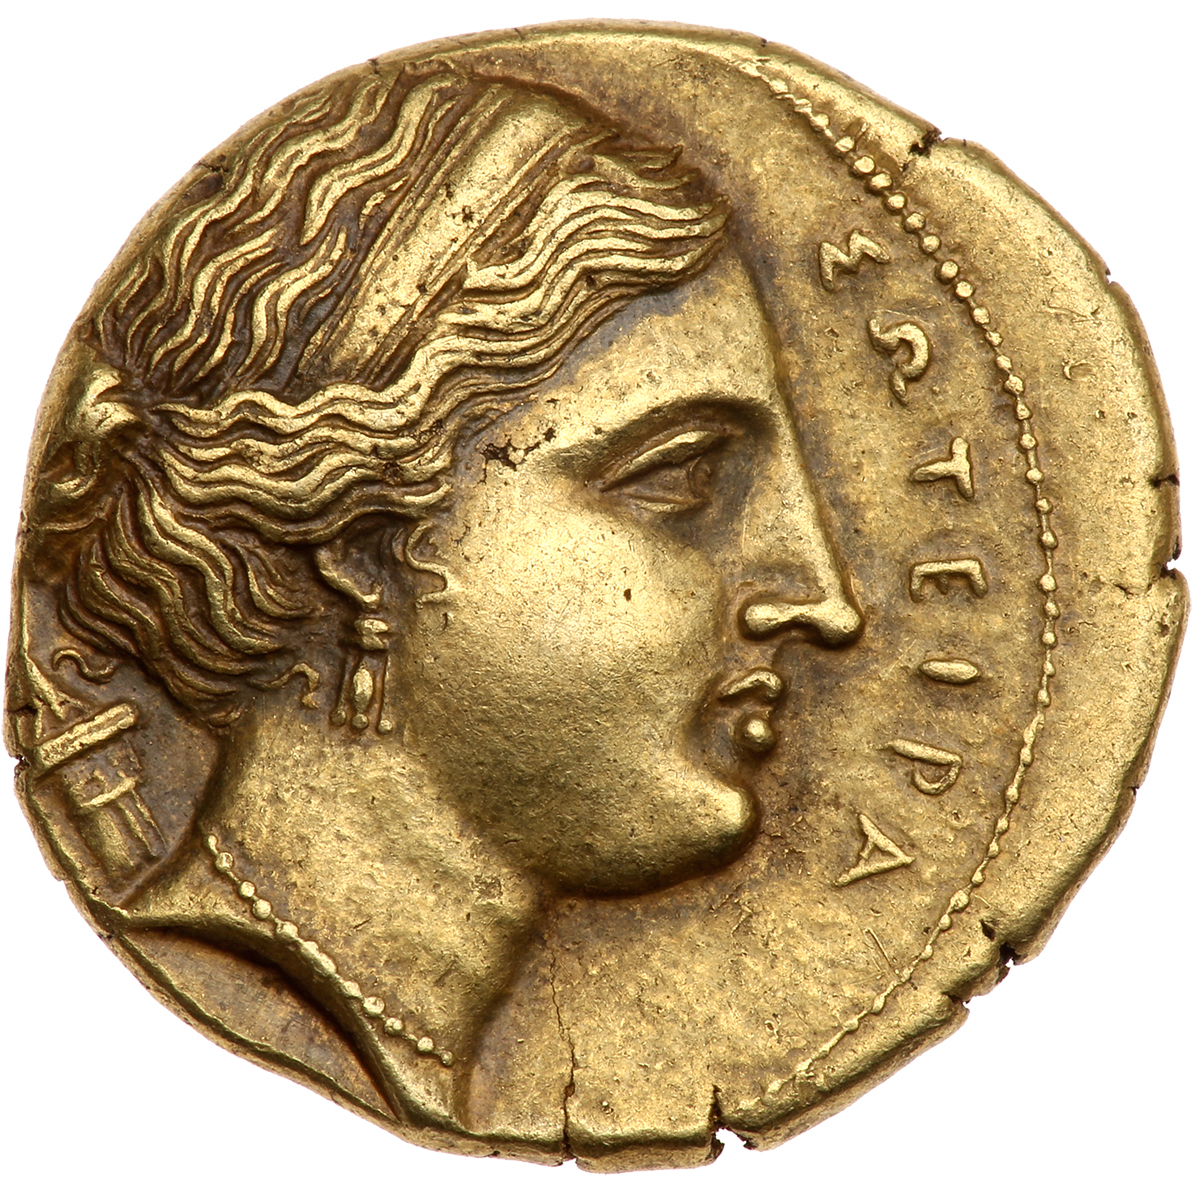 Sold Coins Archive Tagged Ancient Greek Coins - Original